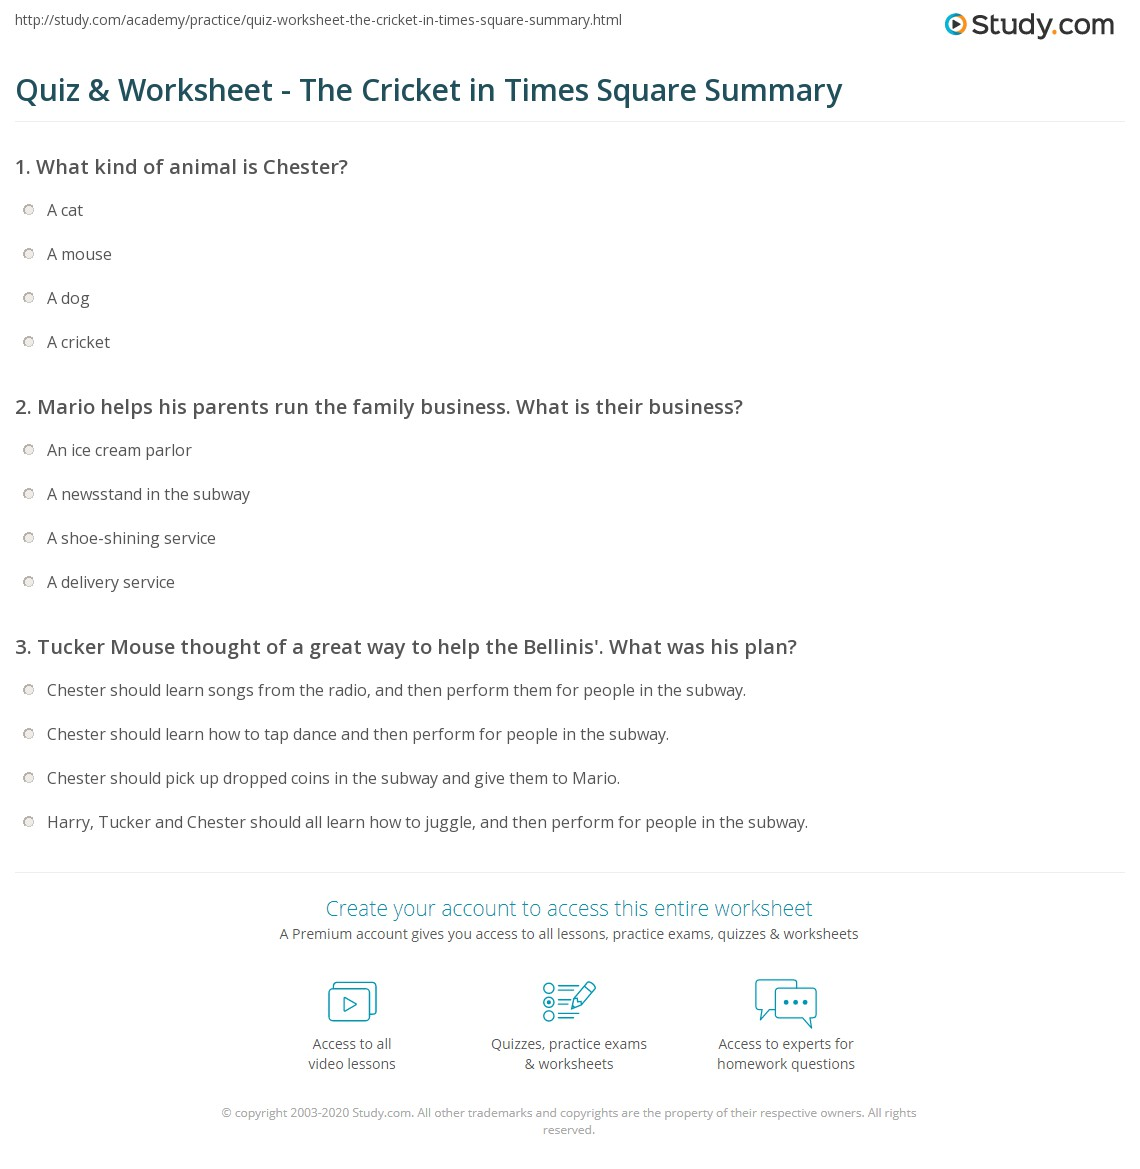 Quiz & Worksheet - The Cricket in Times Square Summary | Study.com